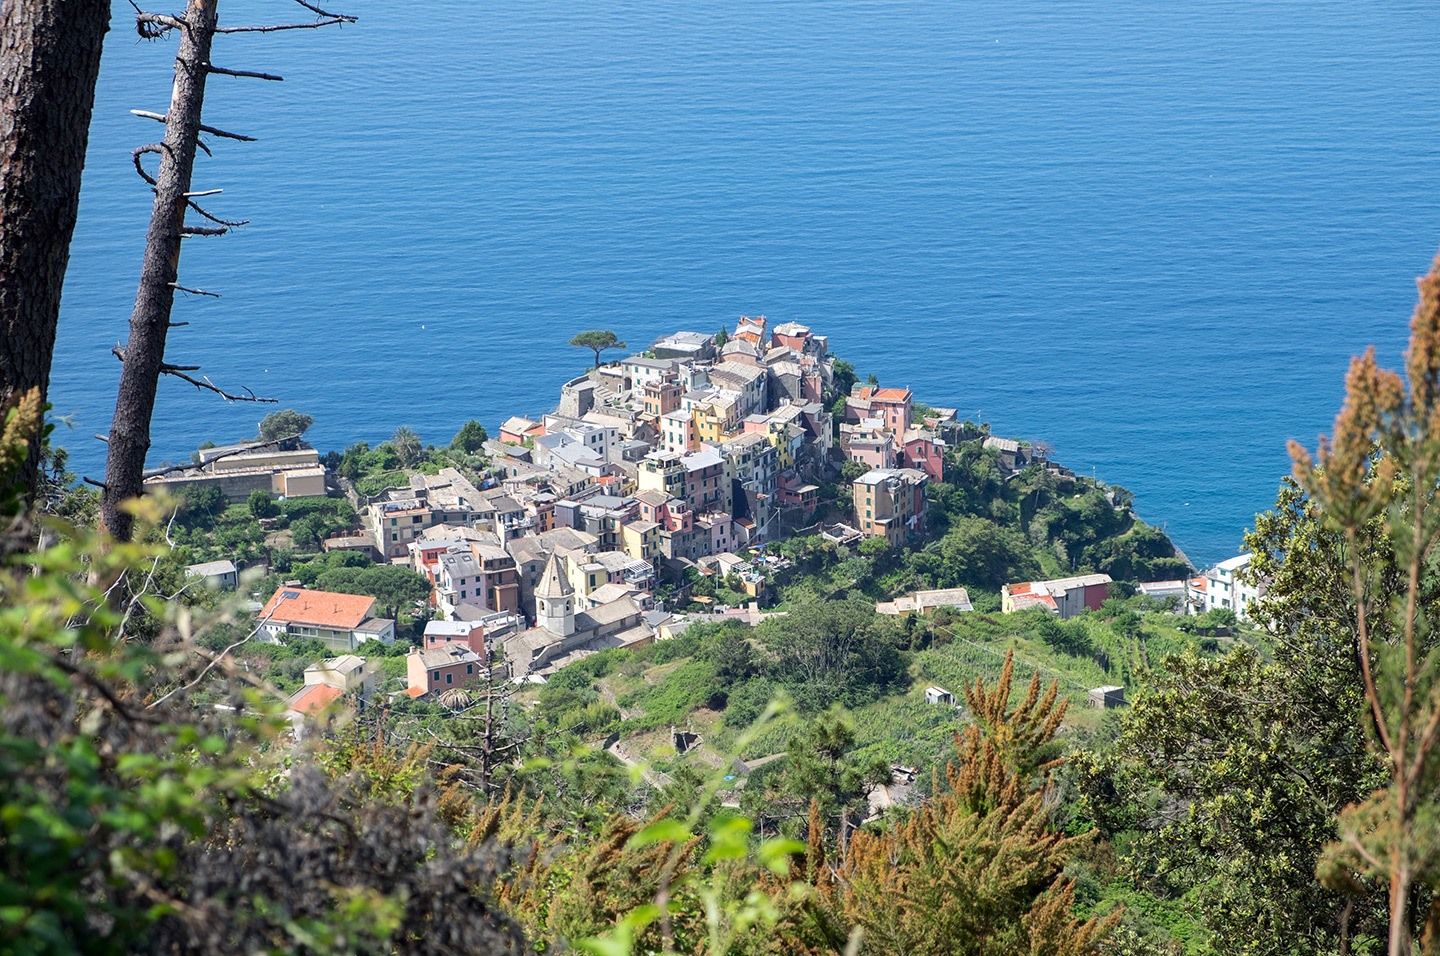 Looking down on Corniglia from above